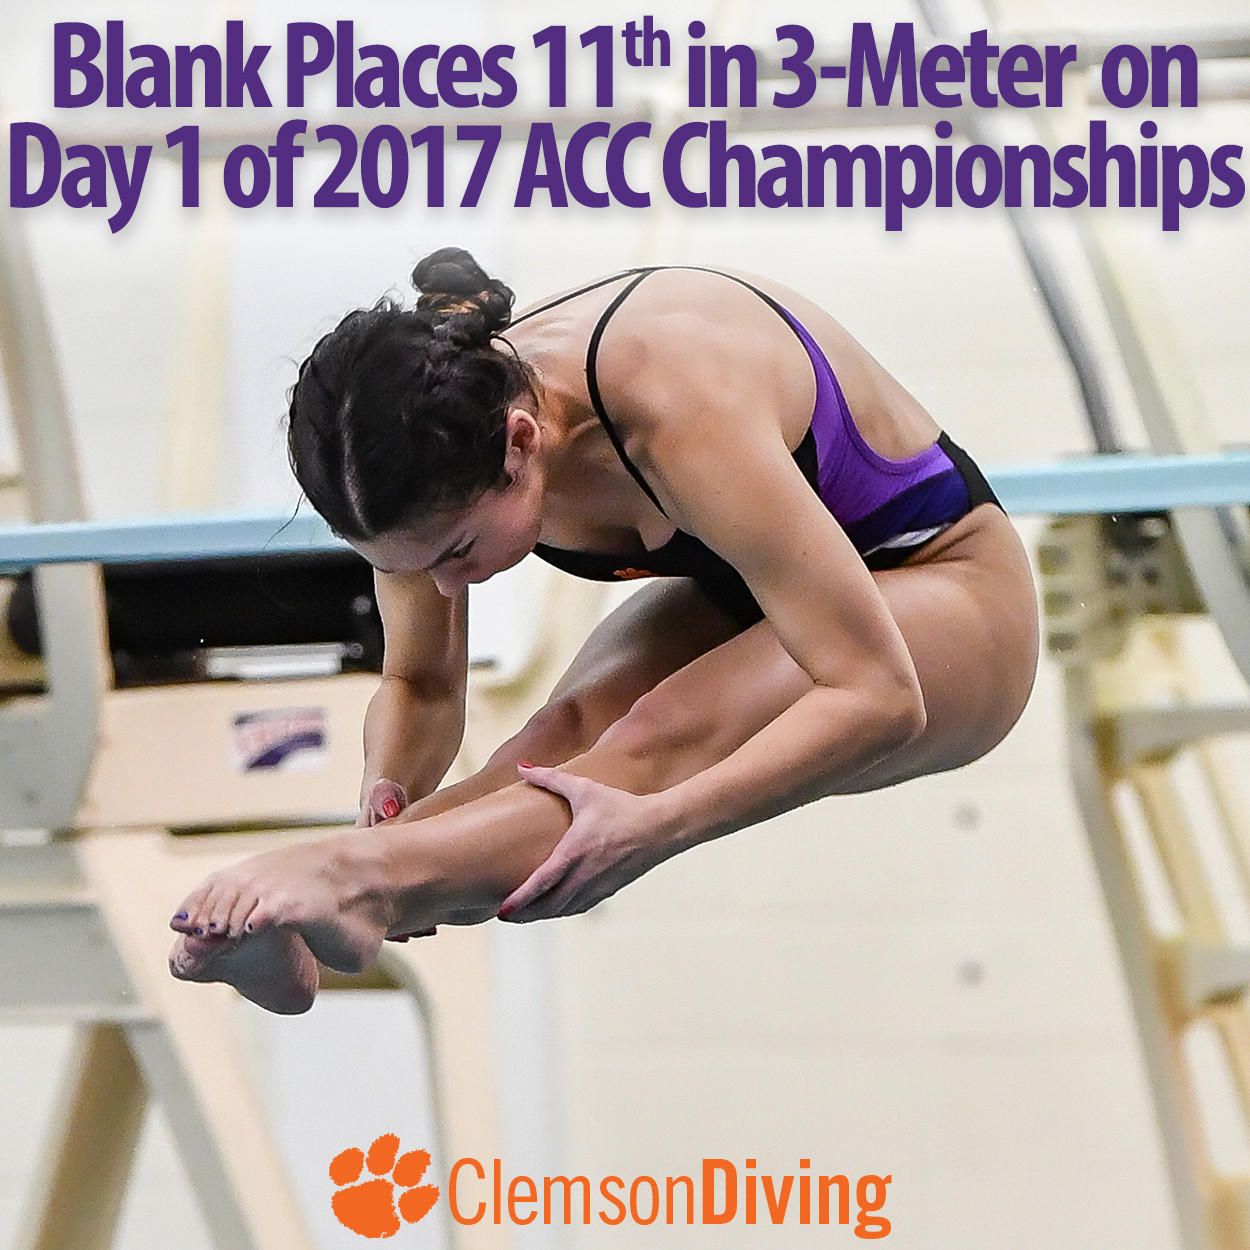 Blank Places 11th, Three Tigers Score in 3M at ACC Championships Monday